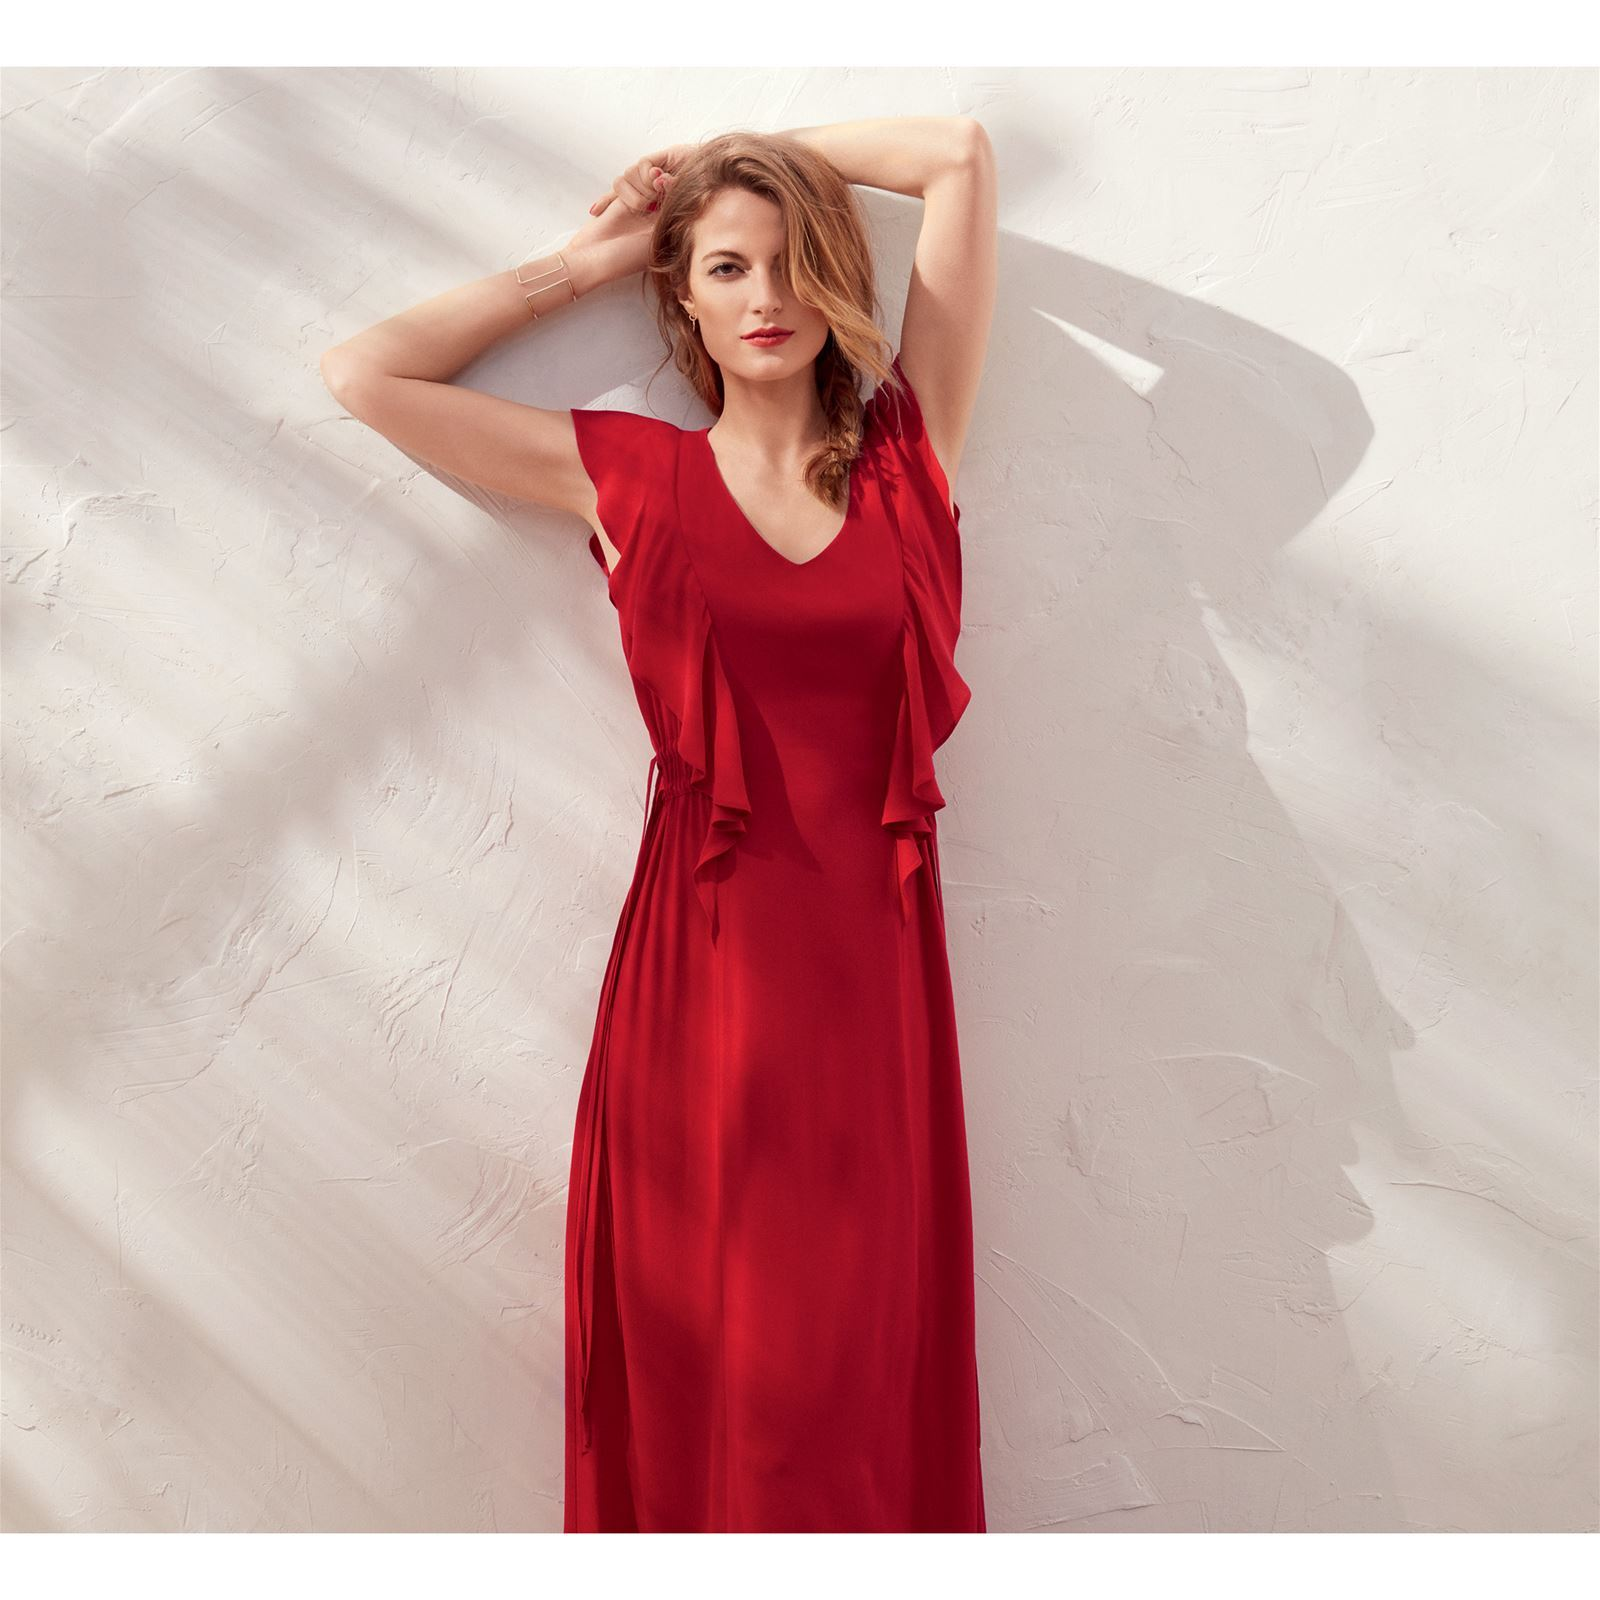 Caroll Kate - Robe longue - rouge   BrandAlley a0ee5834614